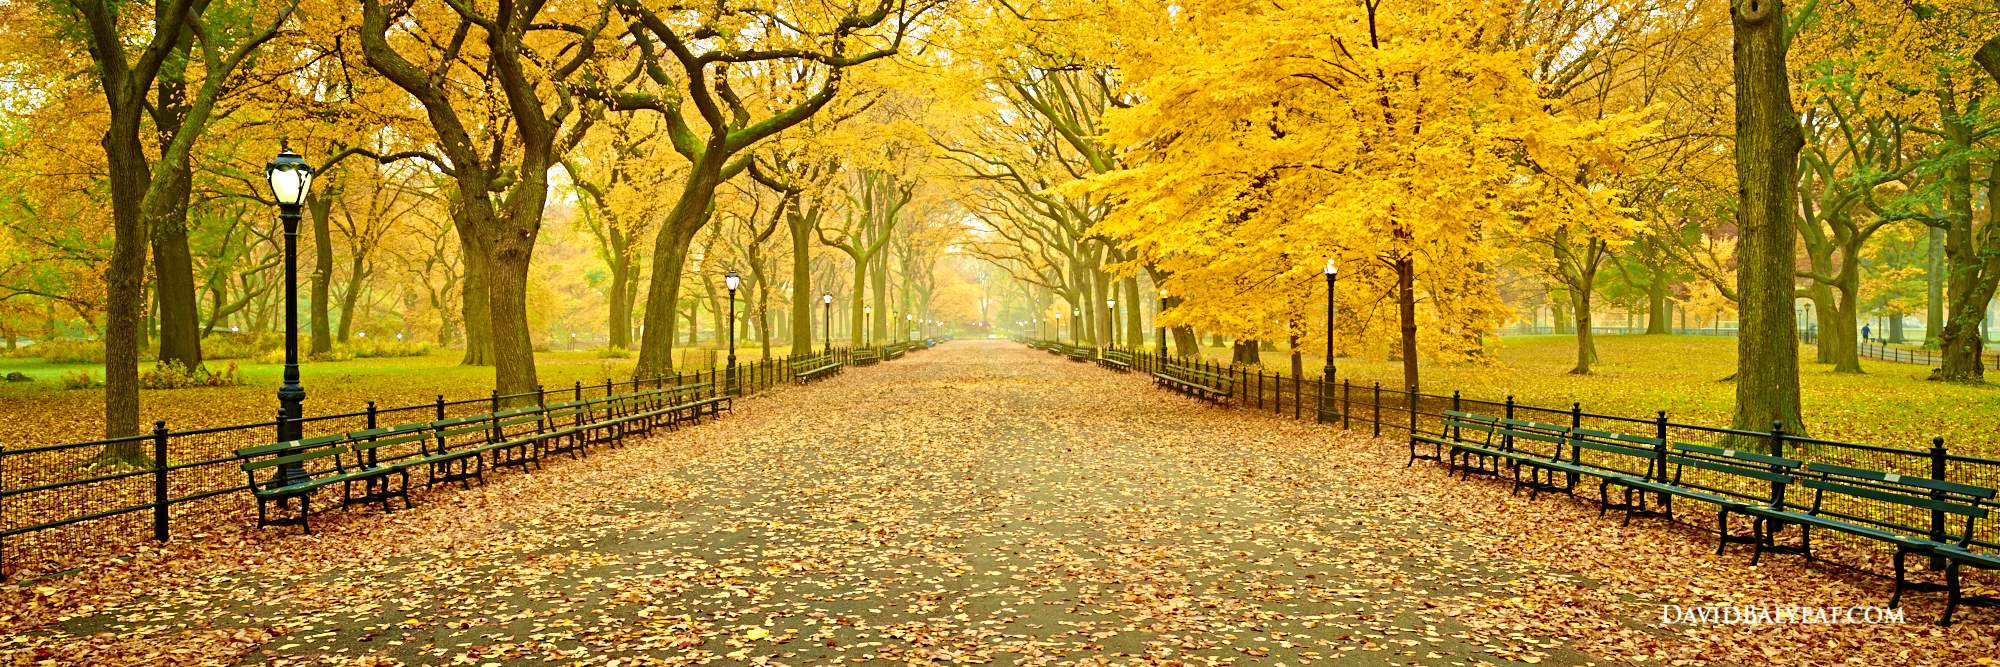 Fall Tree And Black Fence Wallpaper A Walk In The Park Central Park David Balyeat